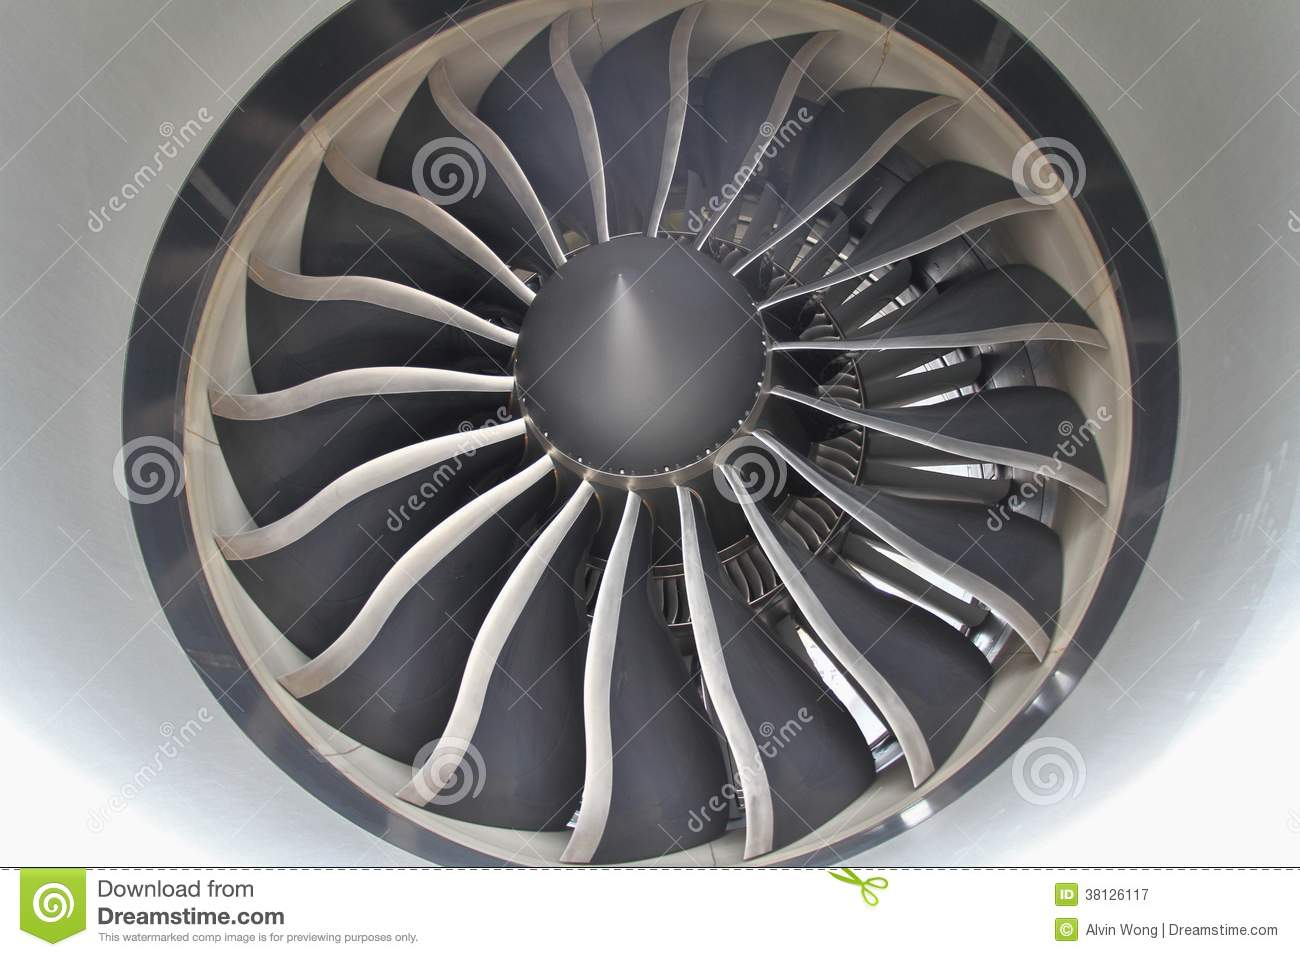 Jet Engine Fan Blades : Jet engine royalty free stock photography image